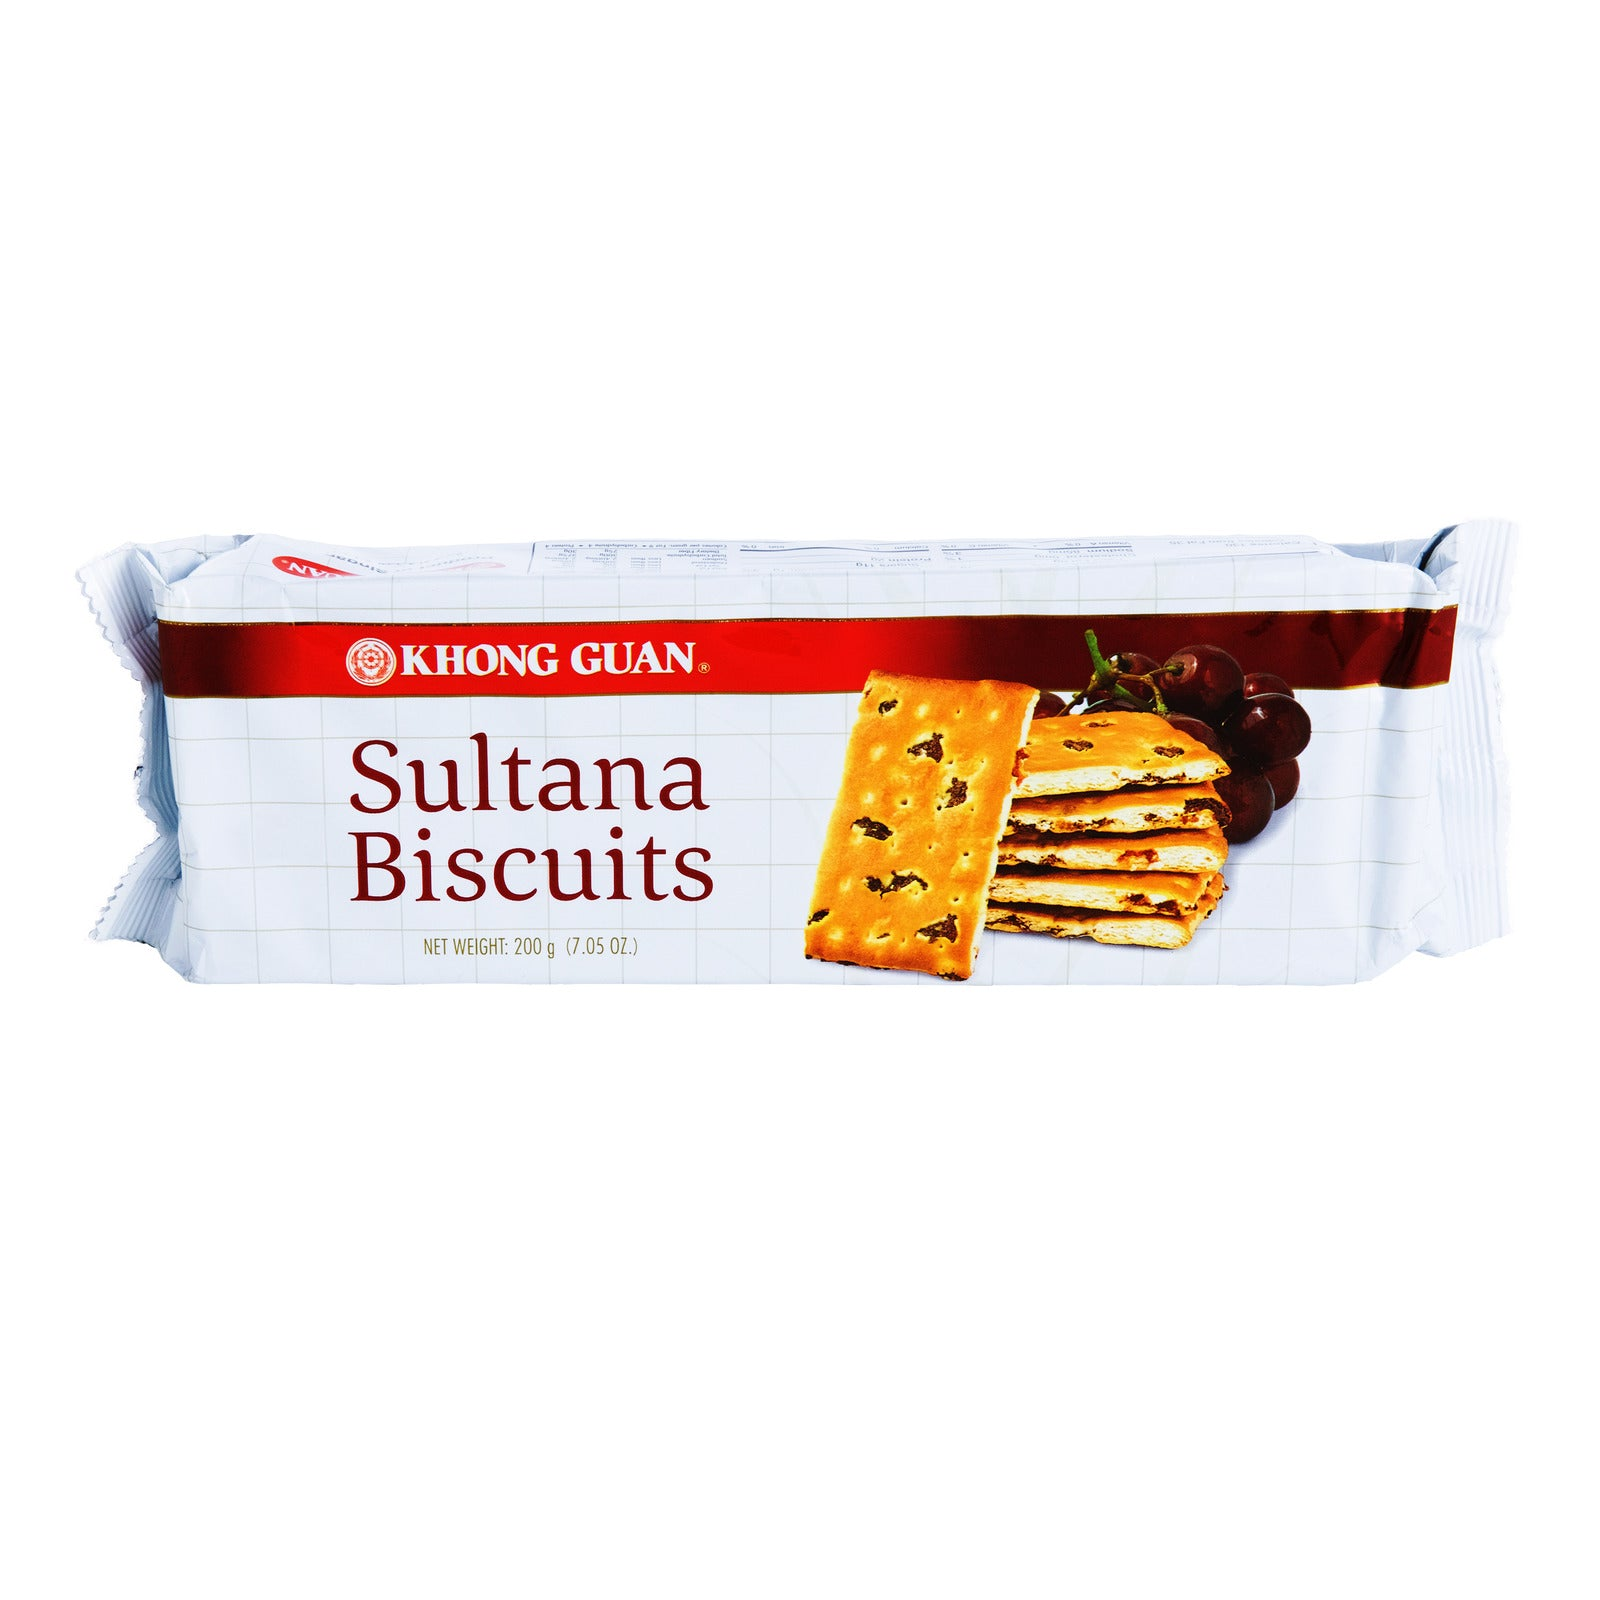 Sultana Biscuits